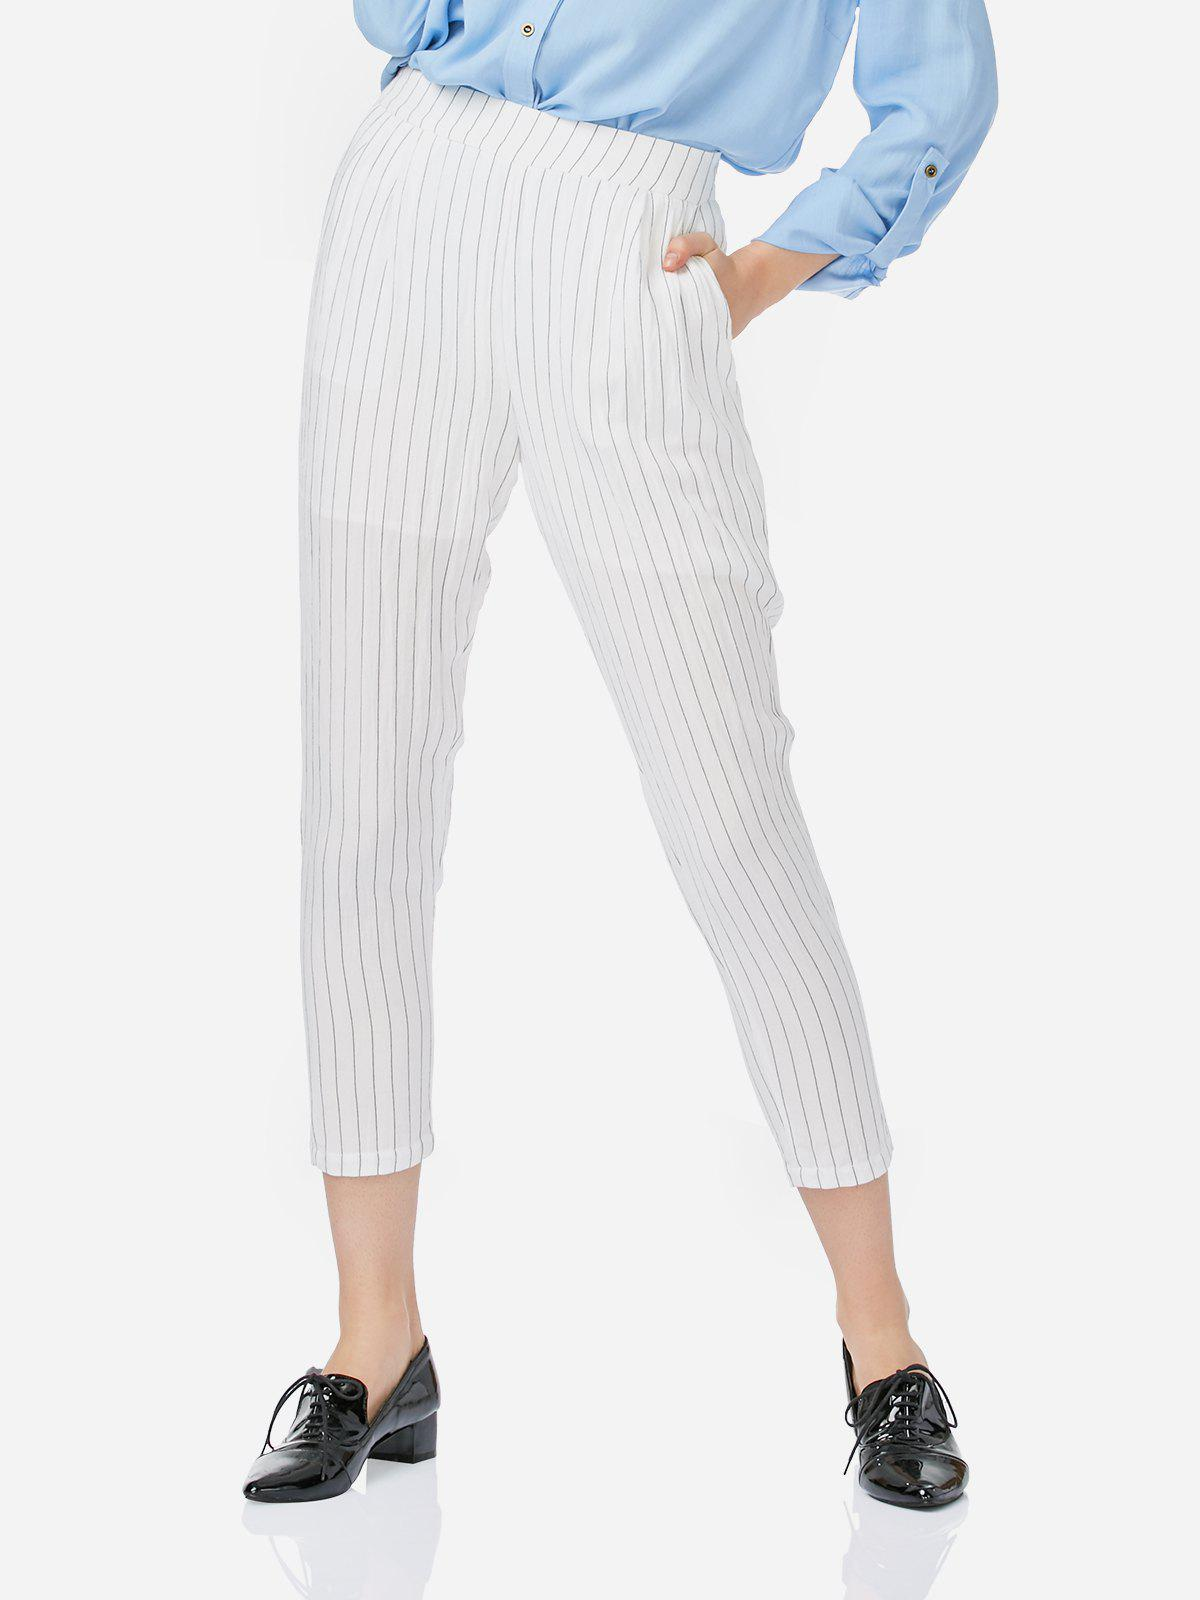 ZAN.STYLE Ankle Length Pleated Pants - WHITE S